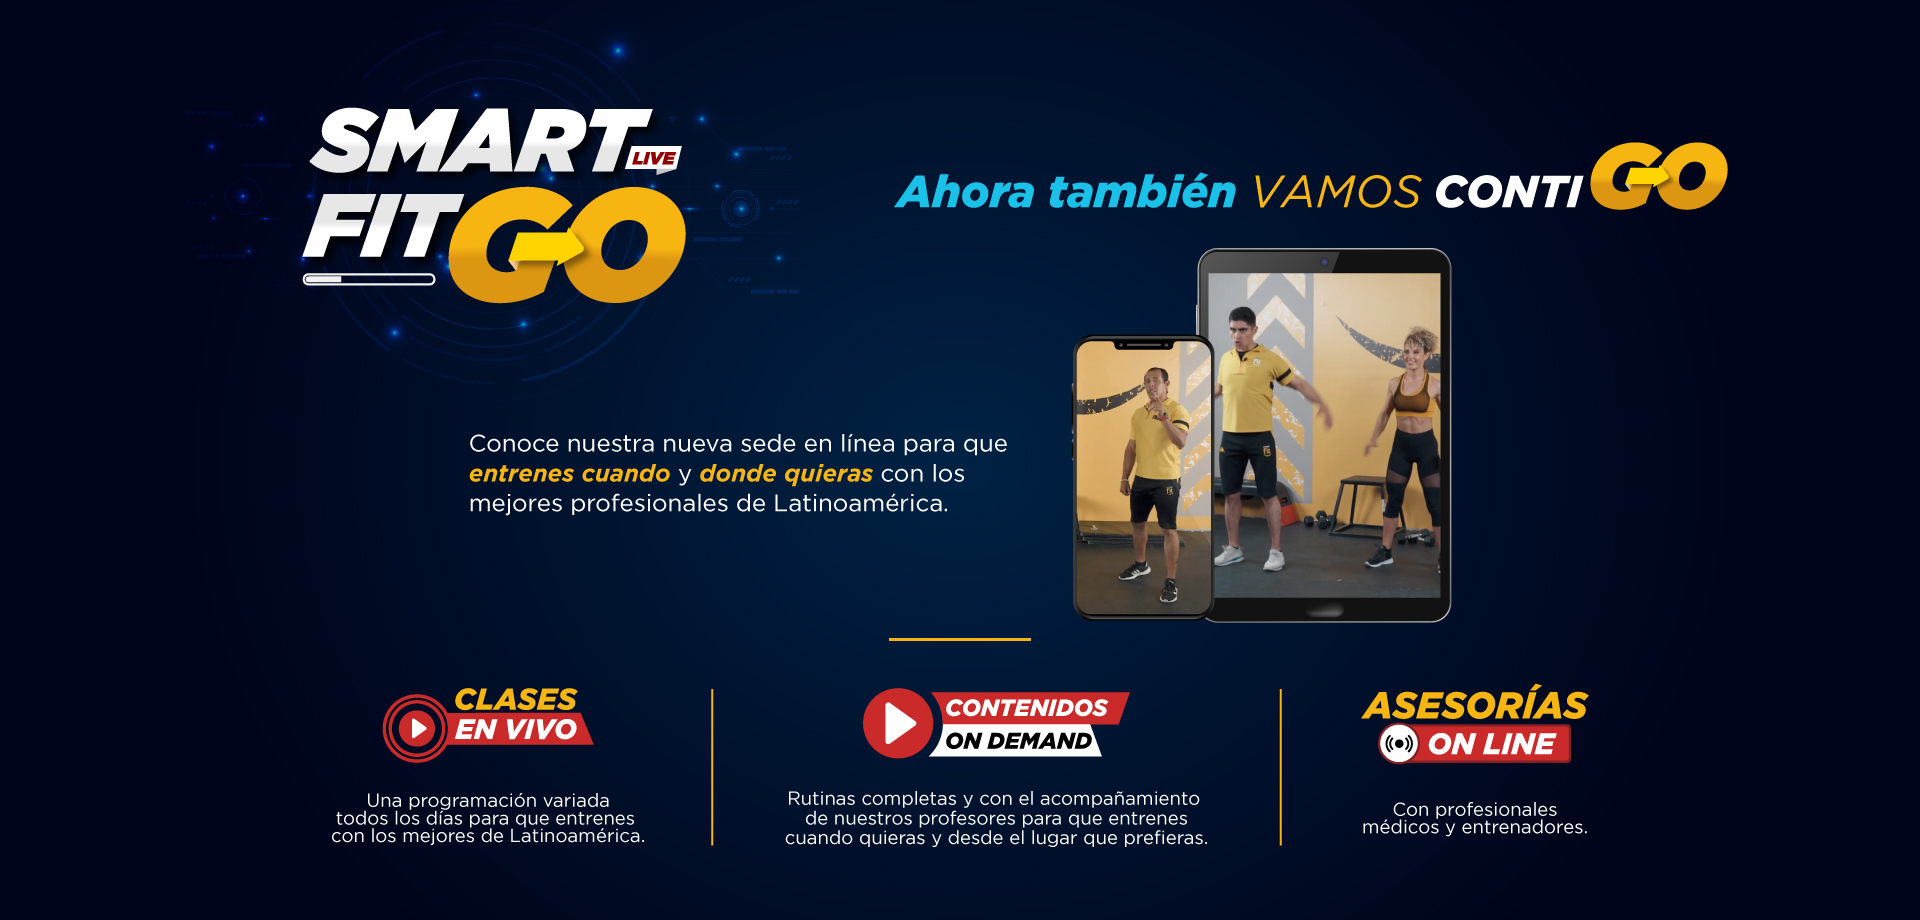 Smart Fit Go